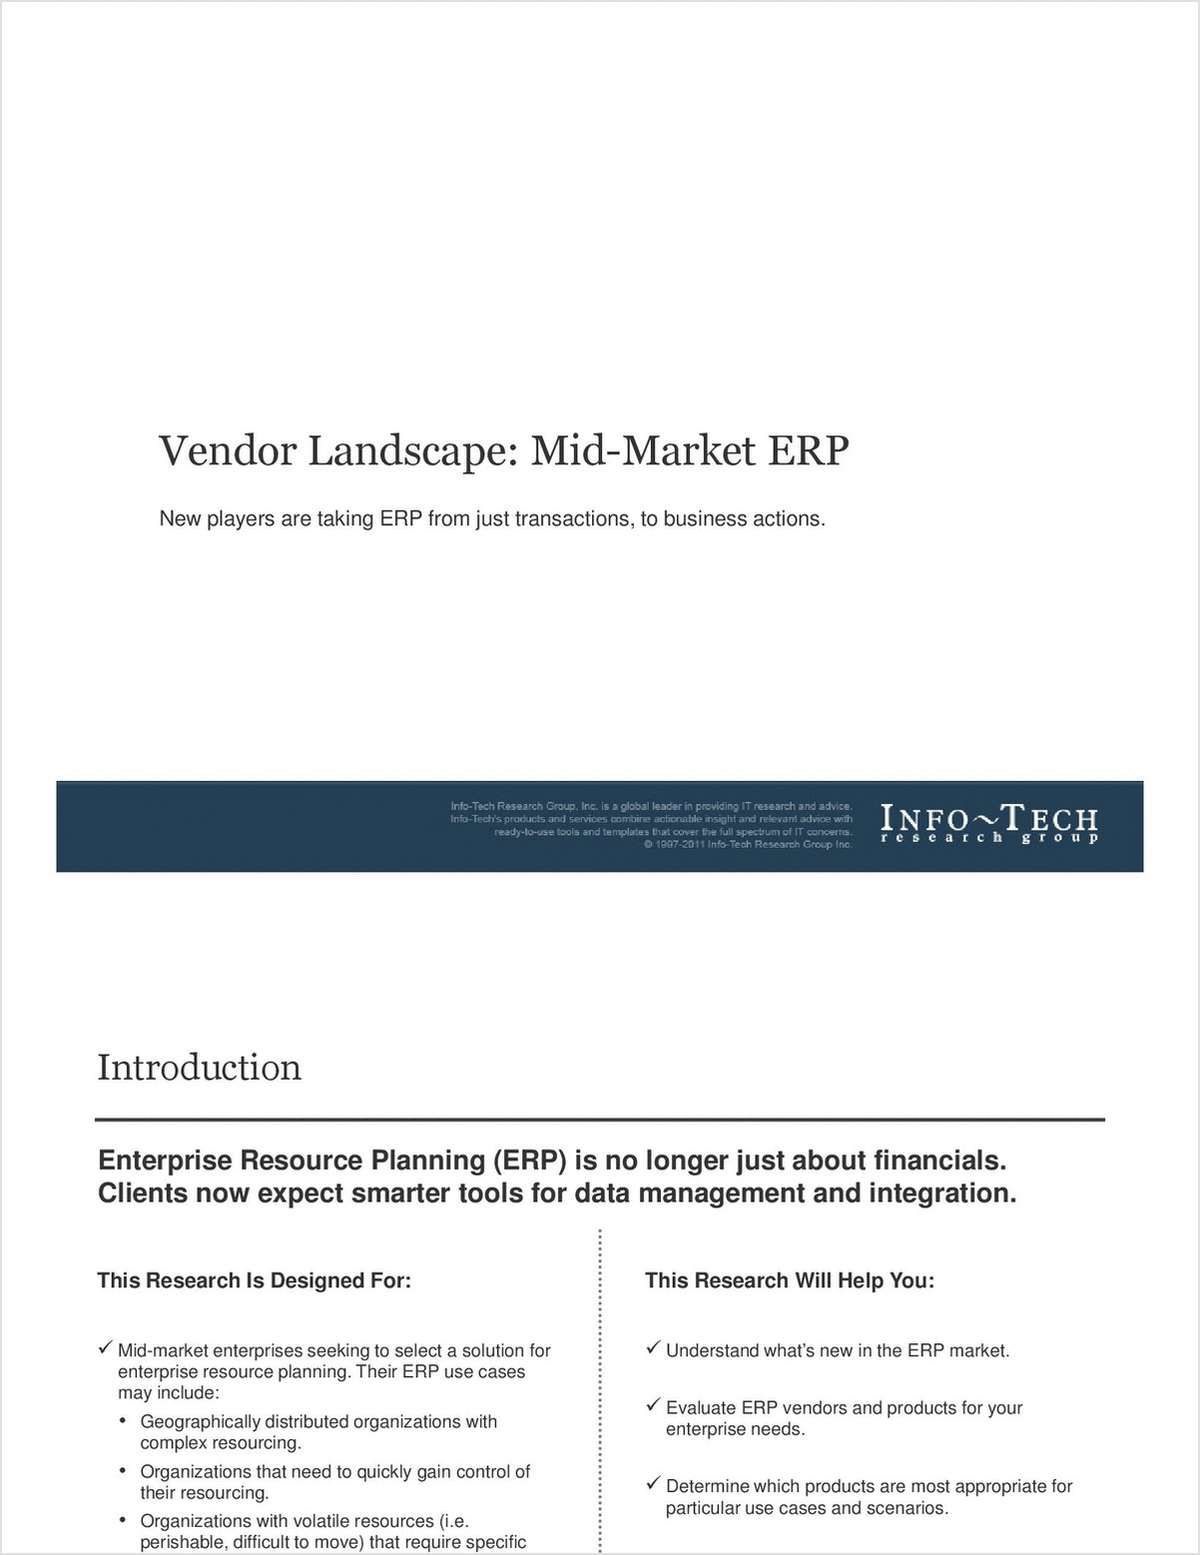 Info-Tech Report: Vendor Landscape for Mid-Market ERP